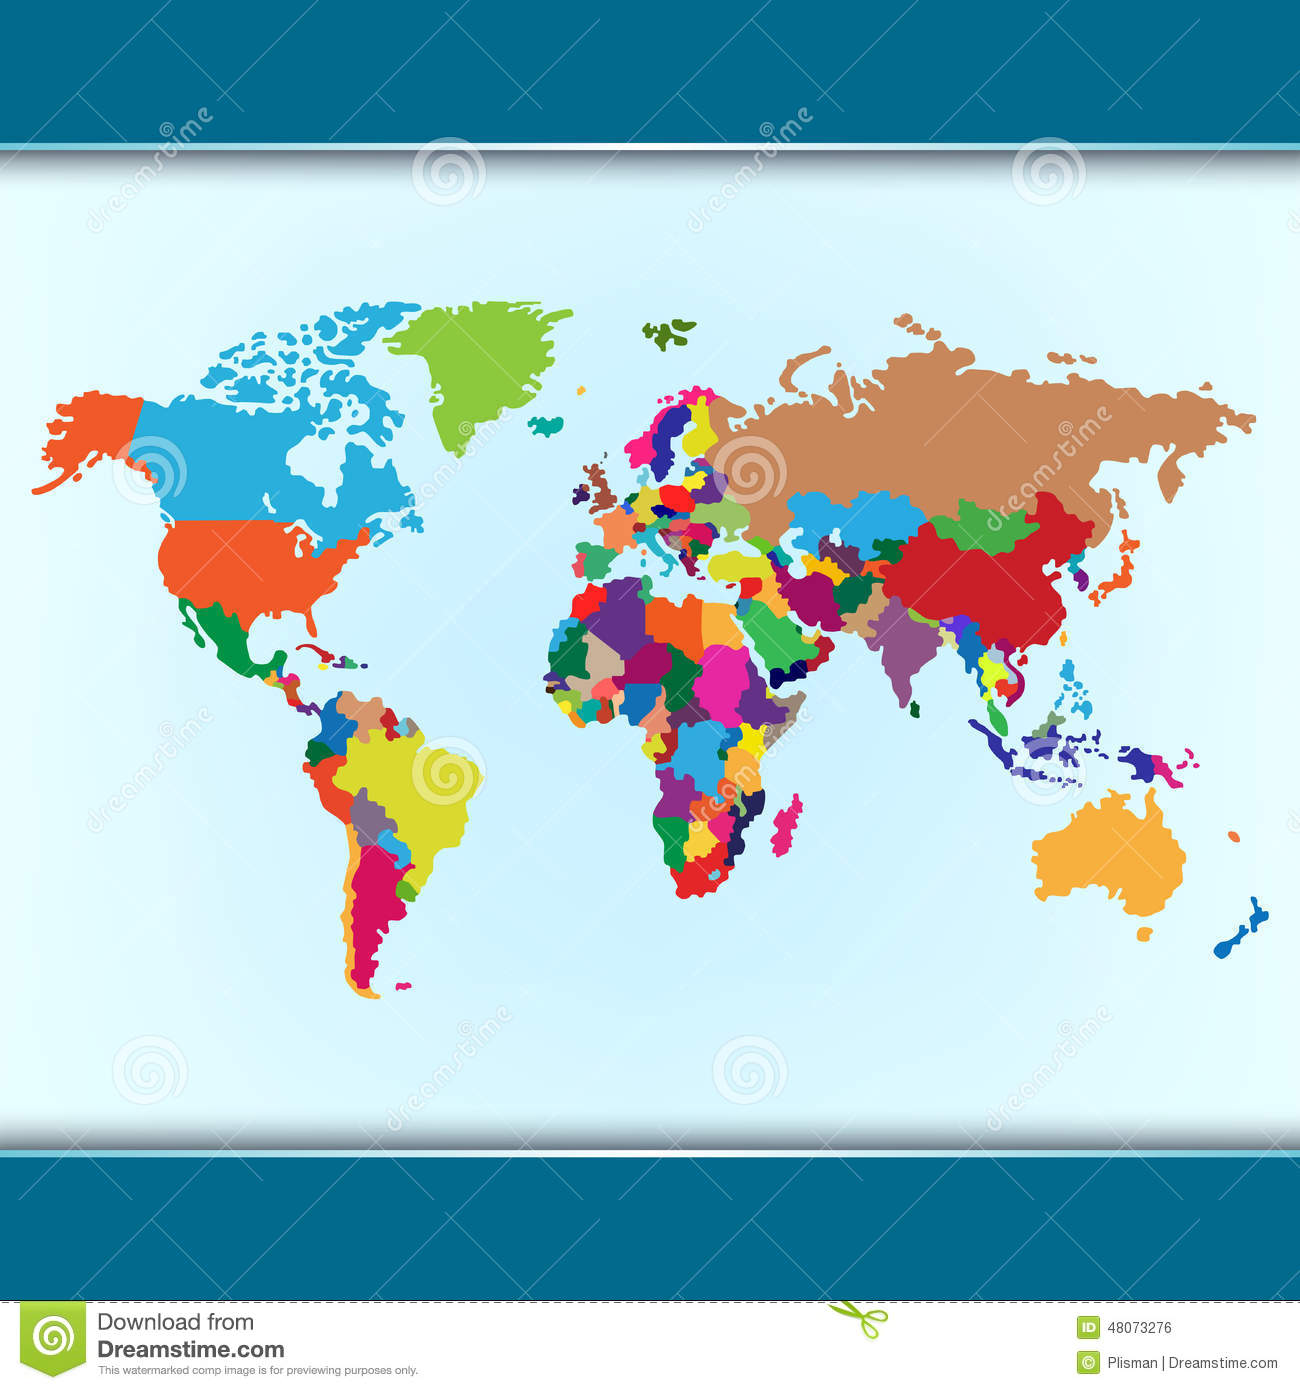 Simple colorful world map stock vector illustration of continent download comp gumiabroncs Gallery